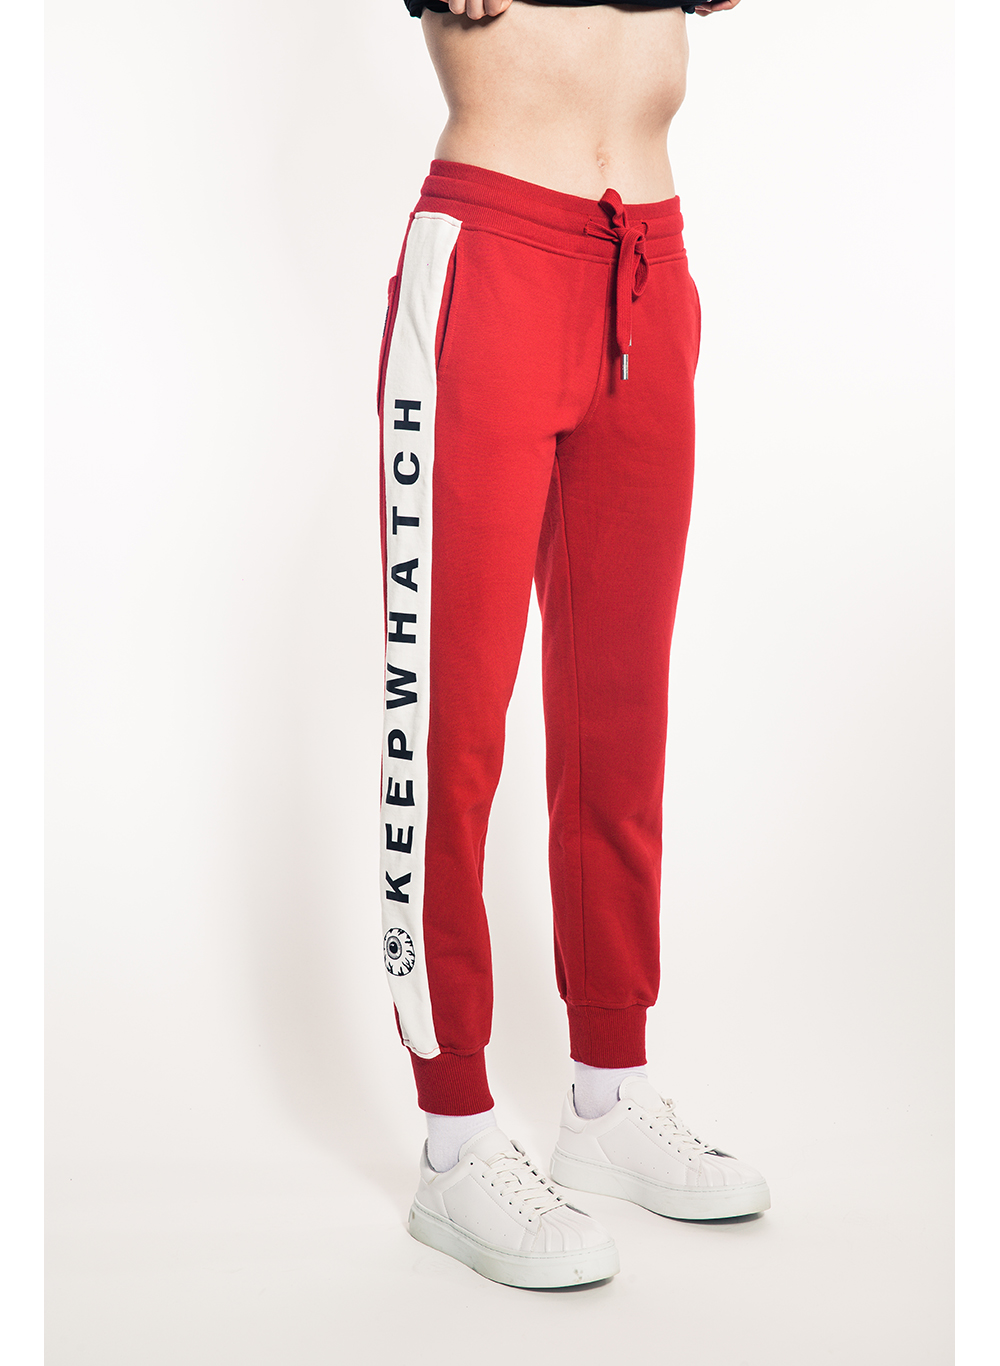 Keep Wha?tch Stripe Women's Sweatpants